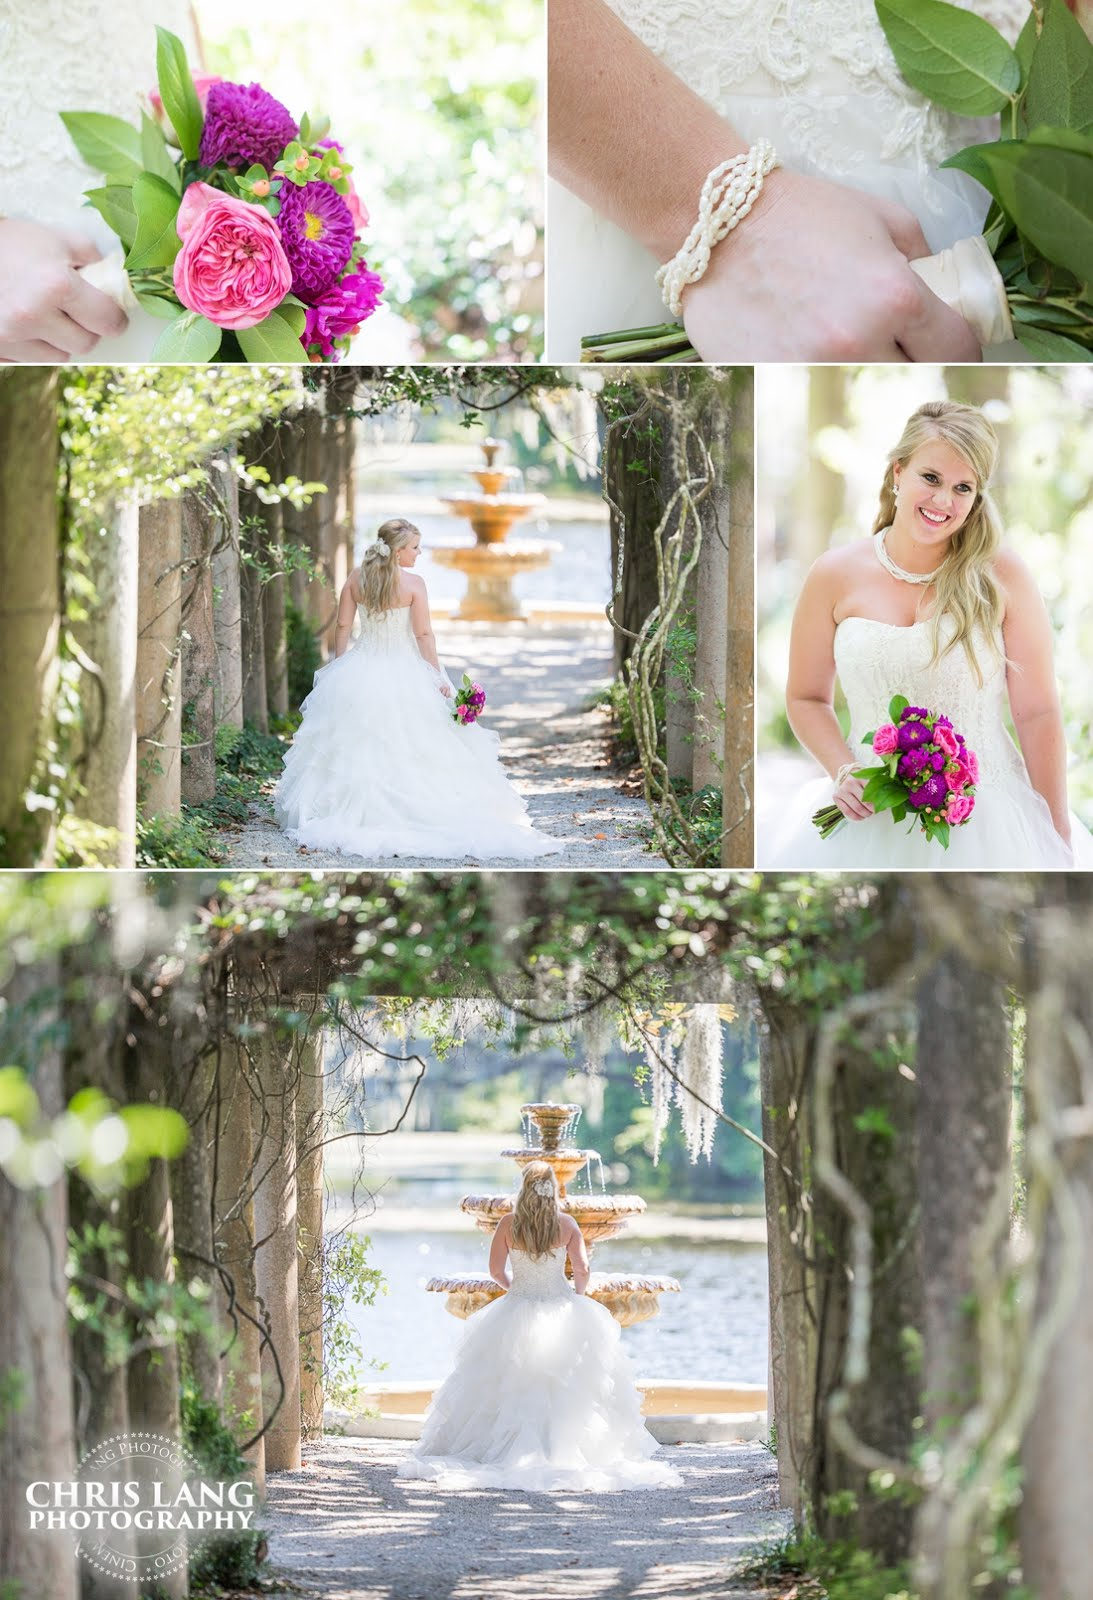 Image of Bride in Airlie Gardens holding flowers at the pergola - Bridal Ideas - Airlie Wedding Picture Ideas - Bride - Wedding Dress - Chris Lang Photography -  Wilmington NC Wedding Photography